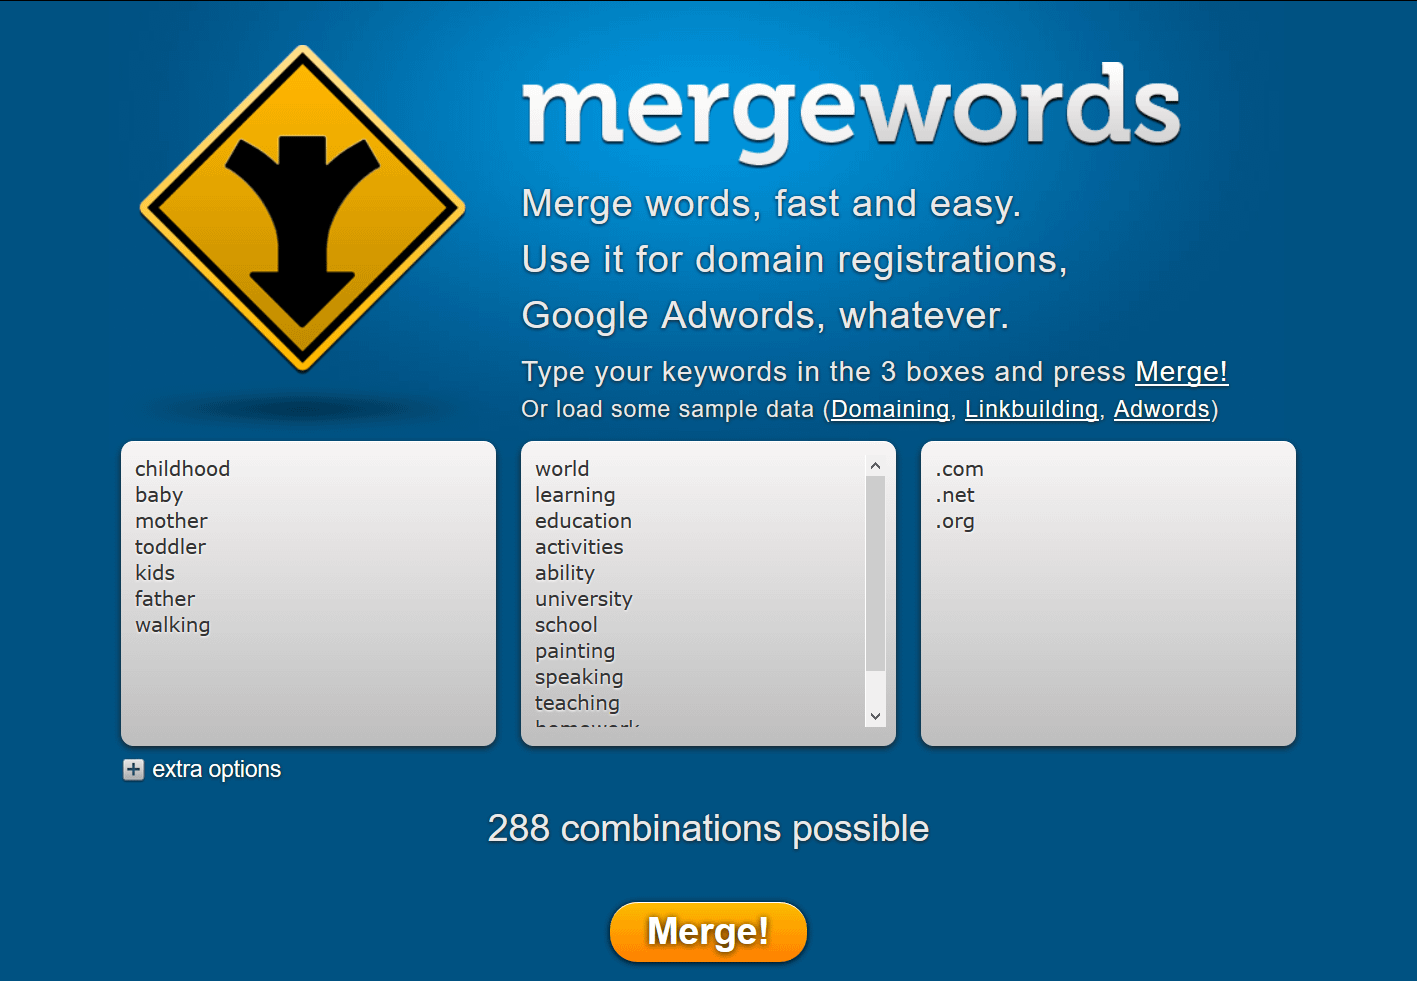 The MergeWords website is one of the best domain generators if you use good lists of words for merging